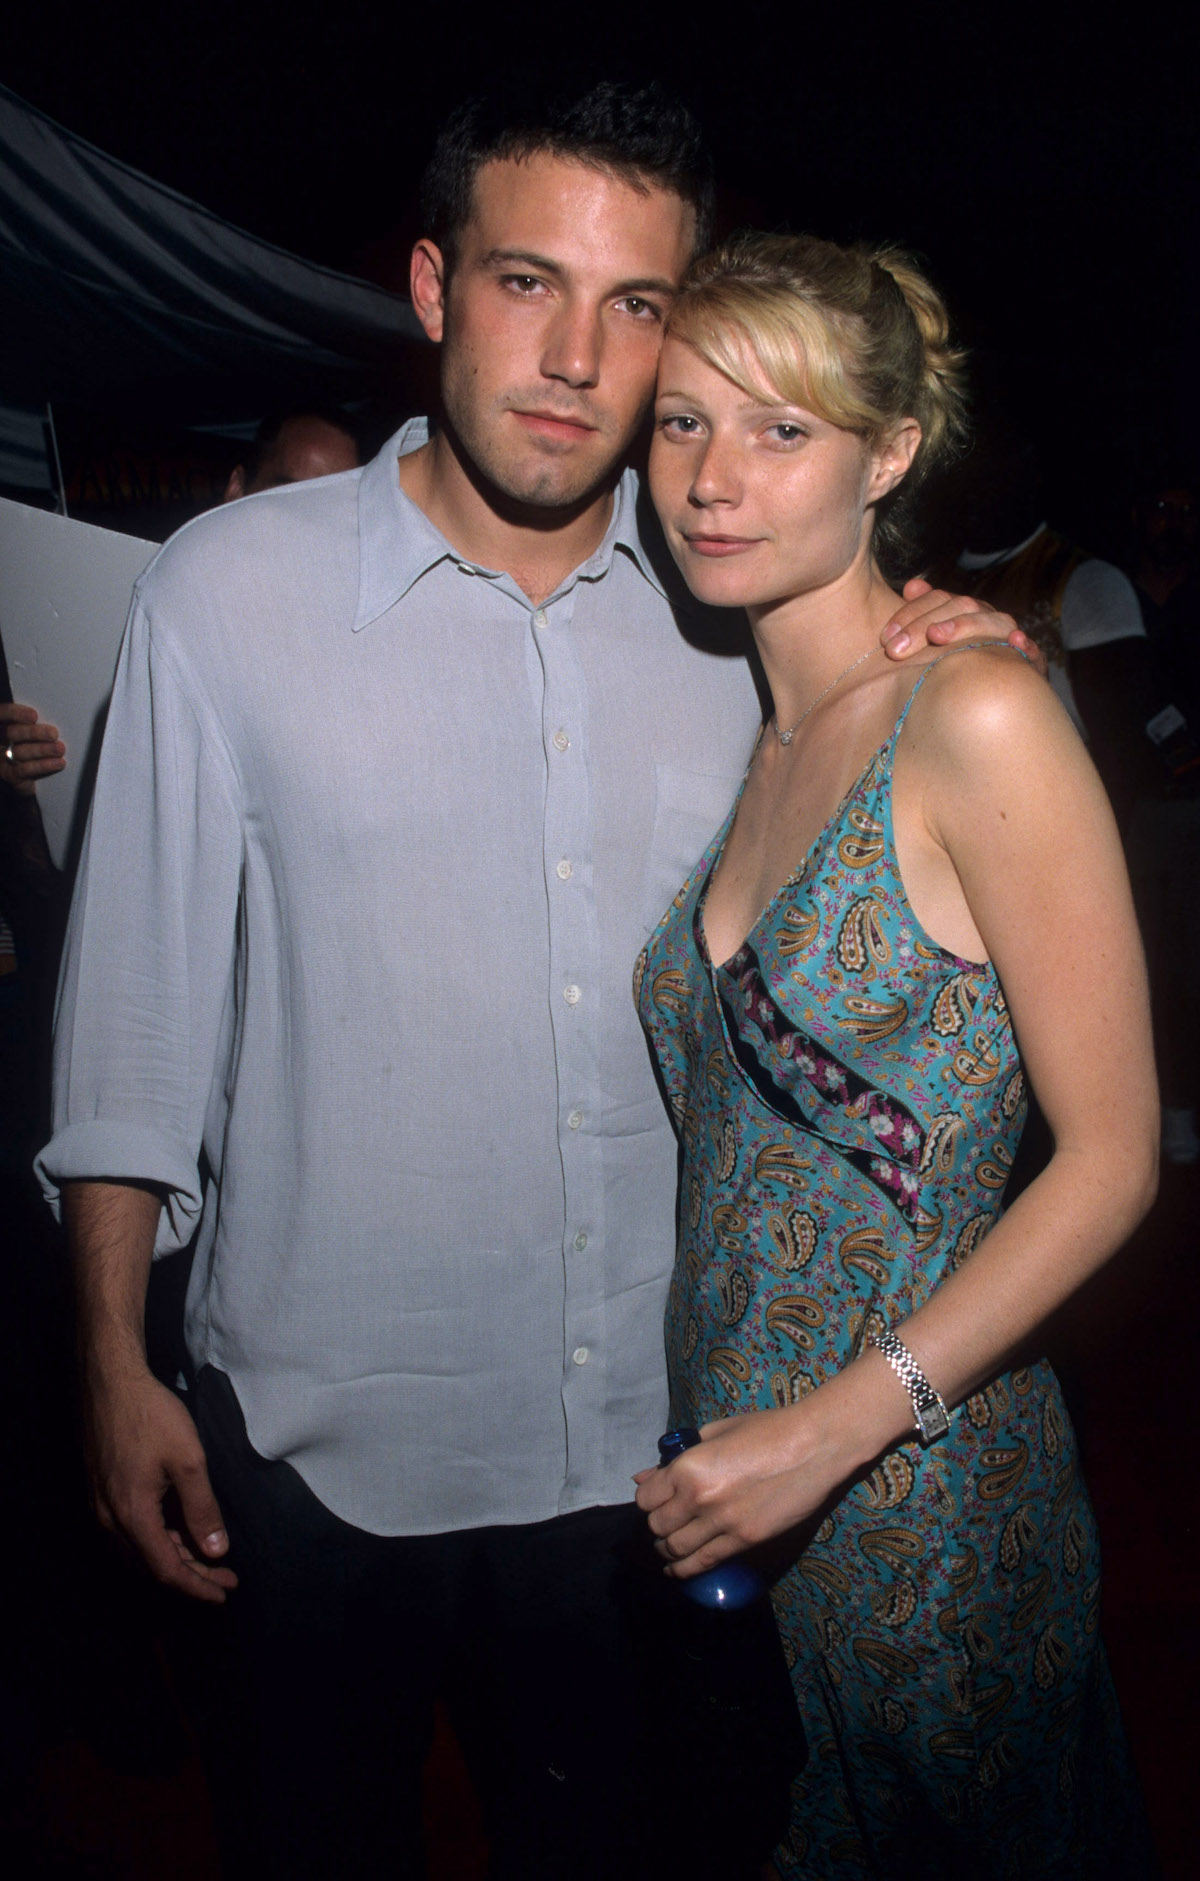 Ben Affleck with his arm around Gwyneth Paltrow at the premiere of 'Armageddon'